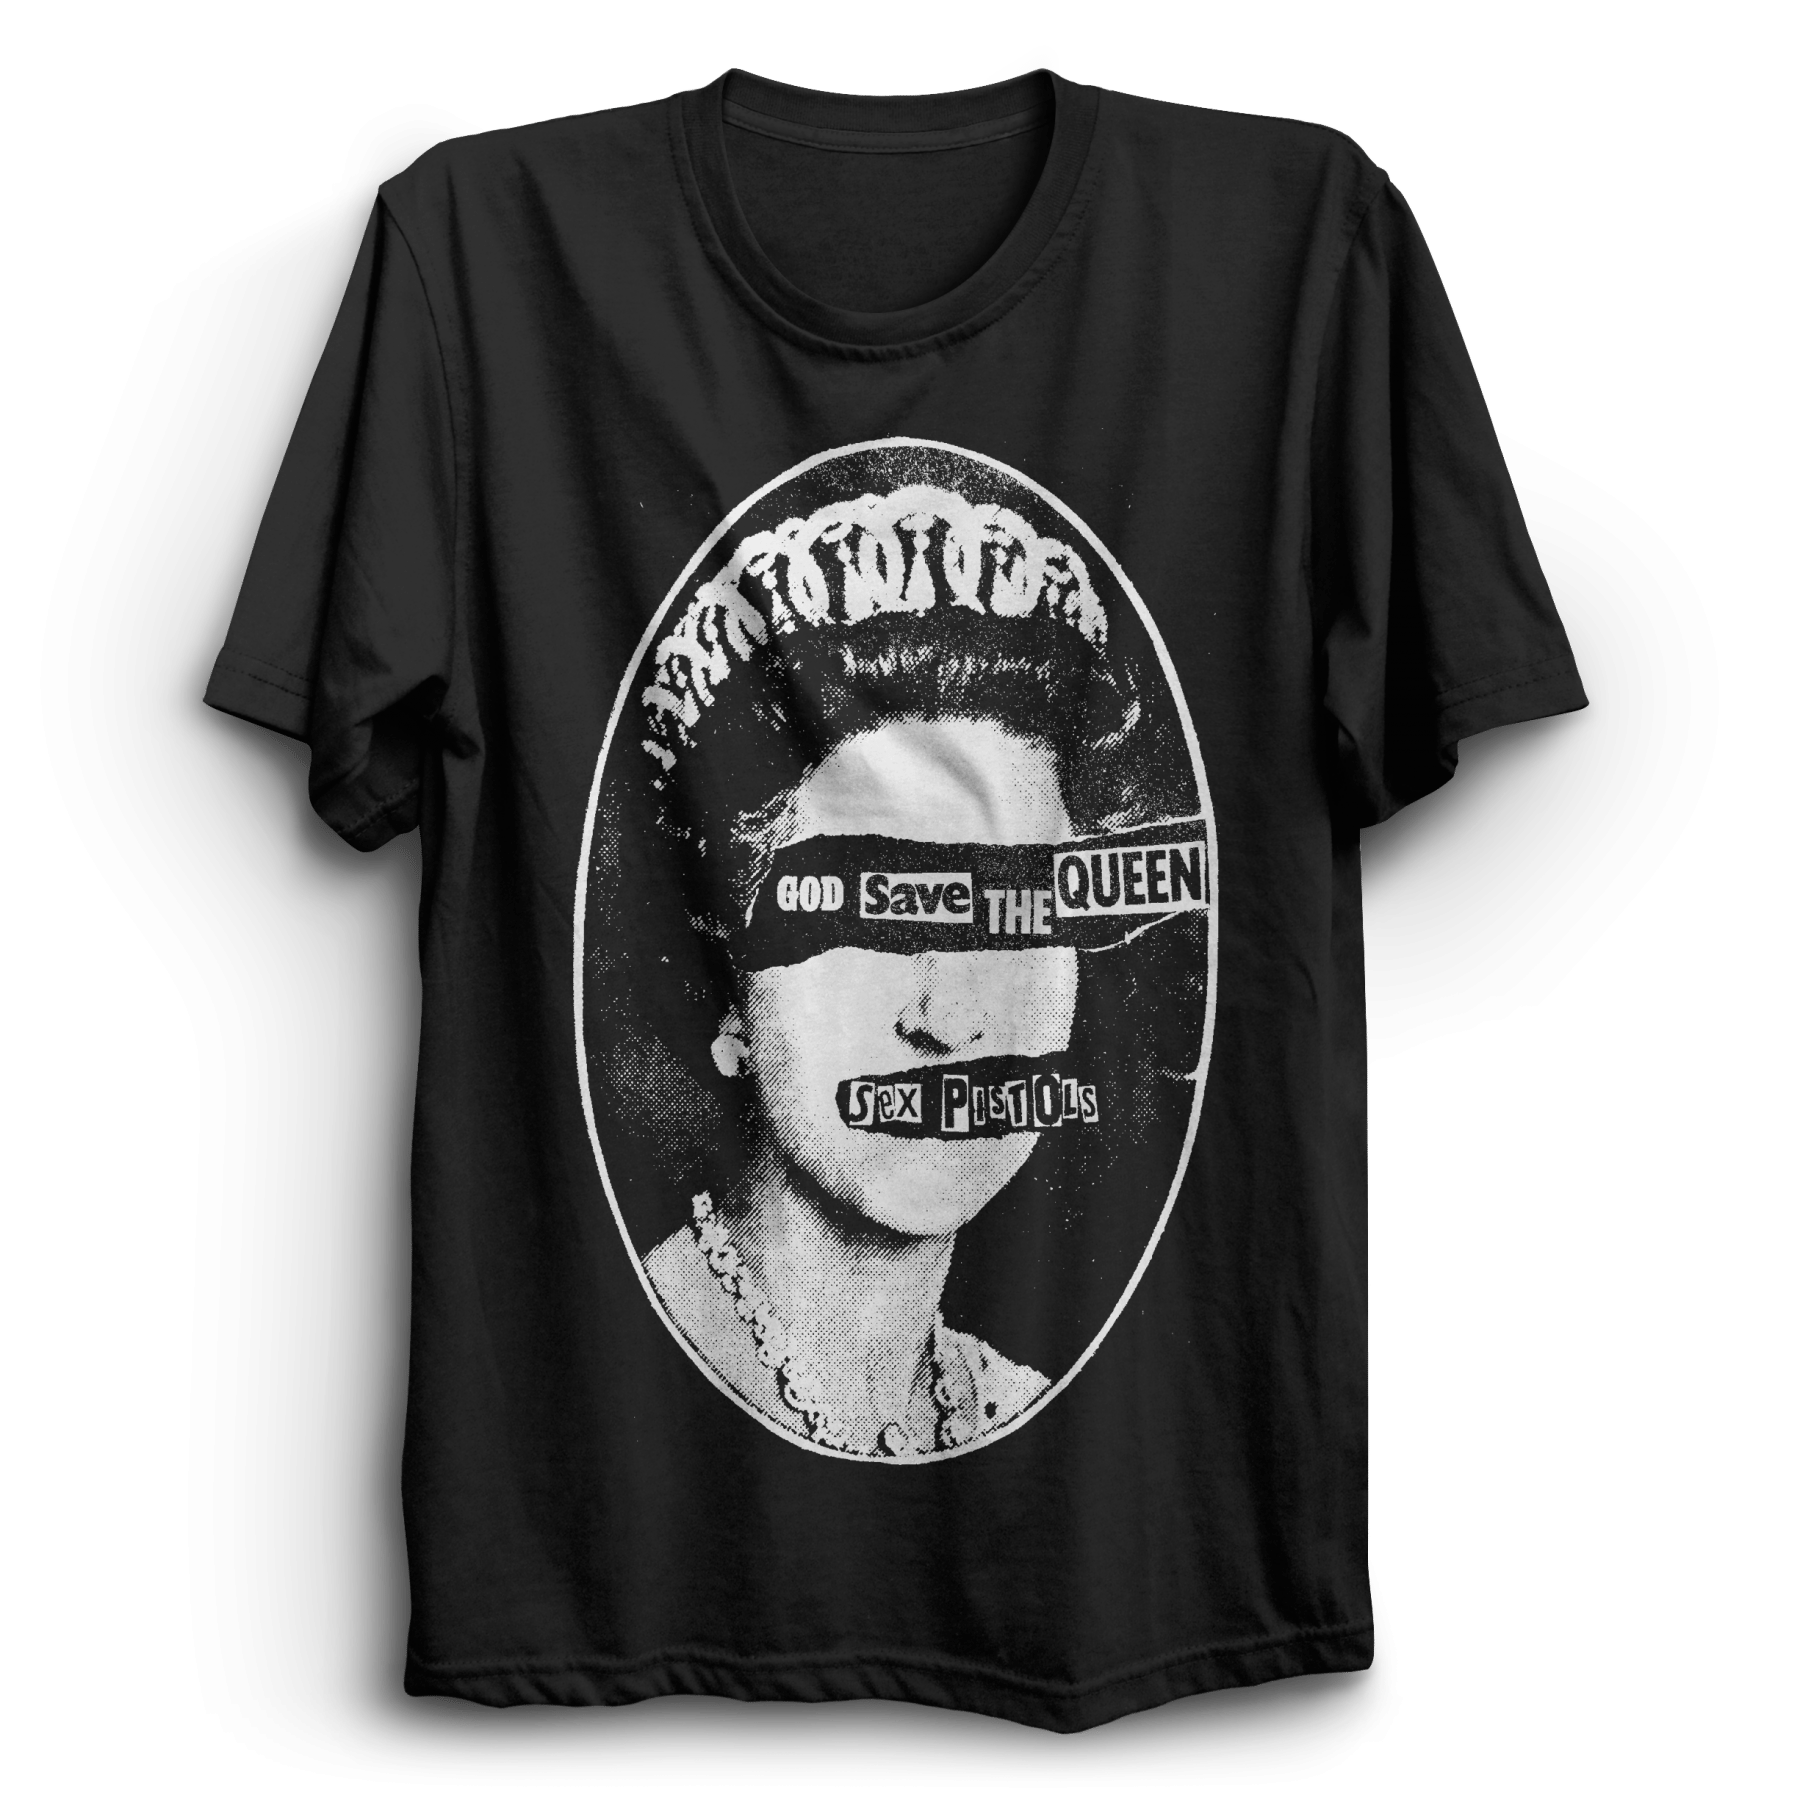 custom t-shirts uk, sex pistols, god save the queen